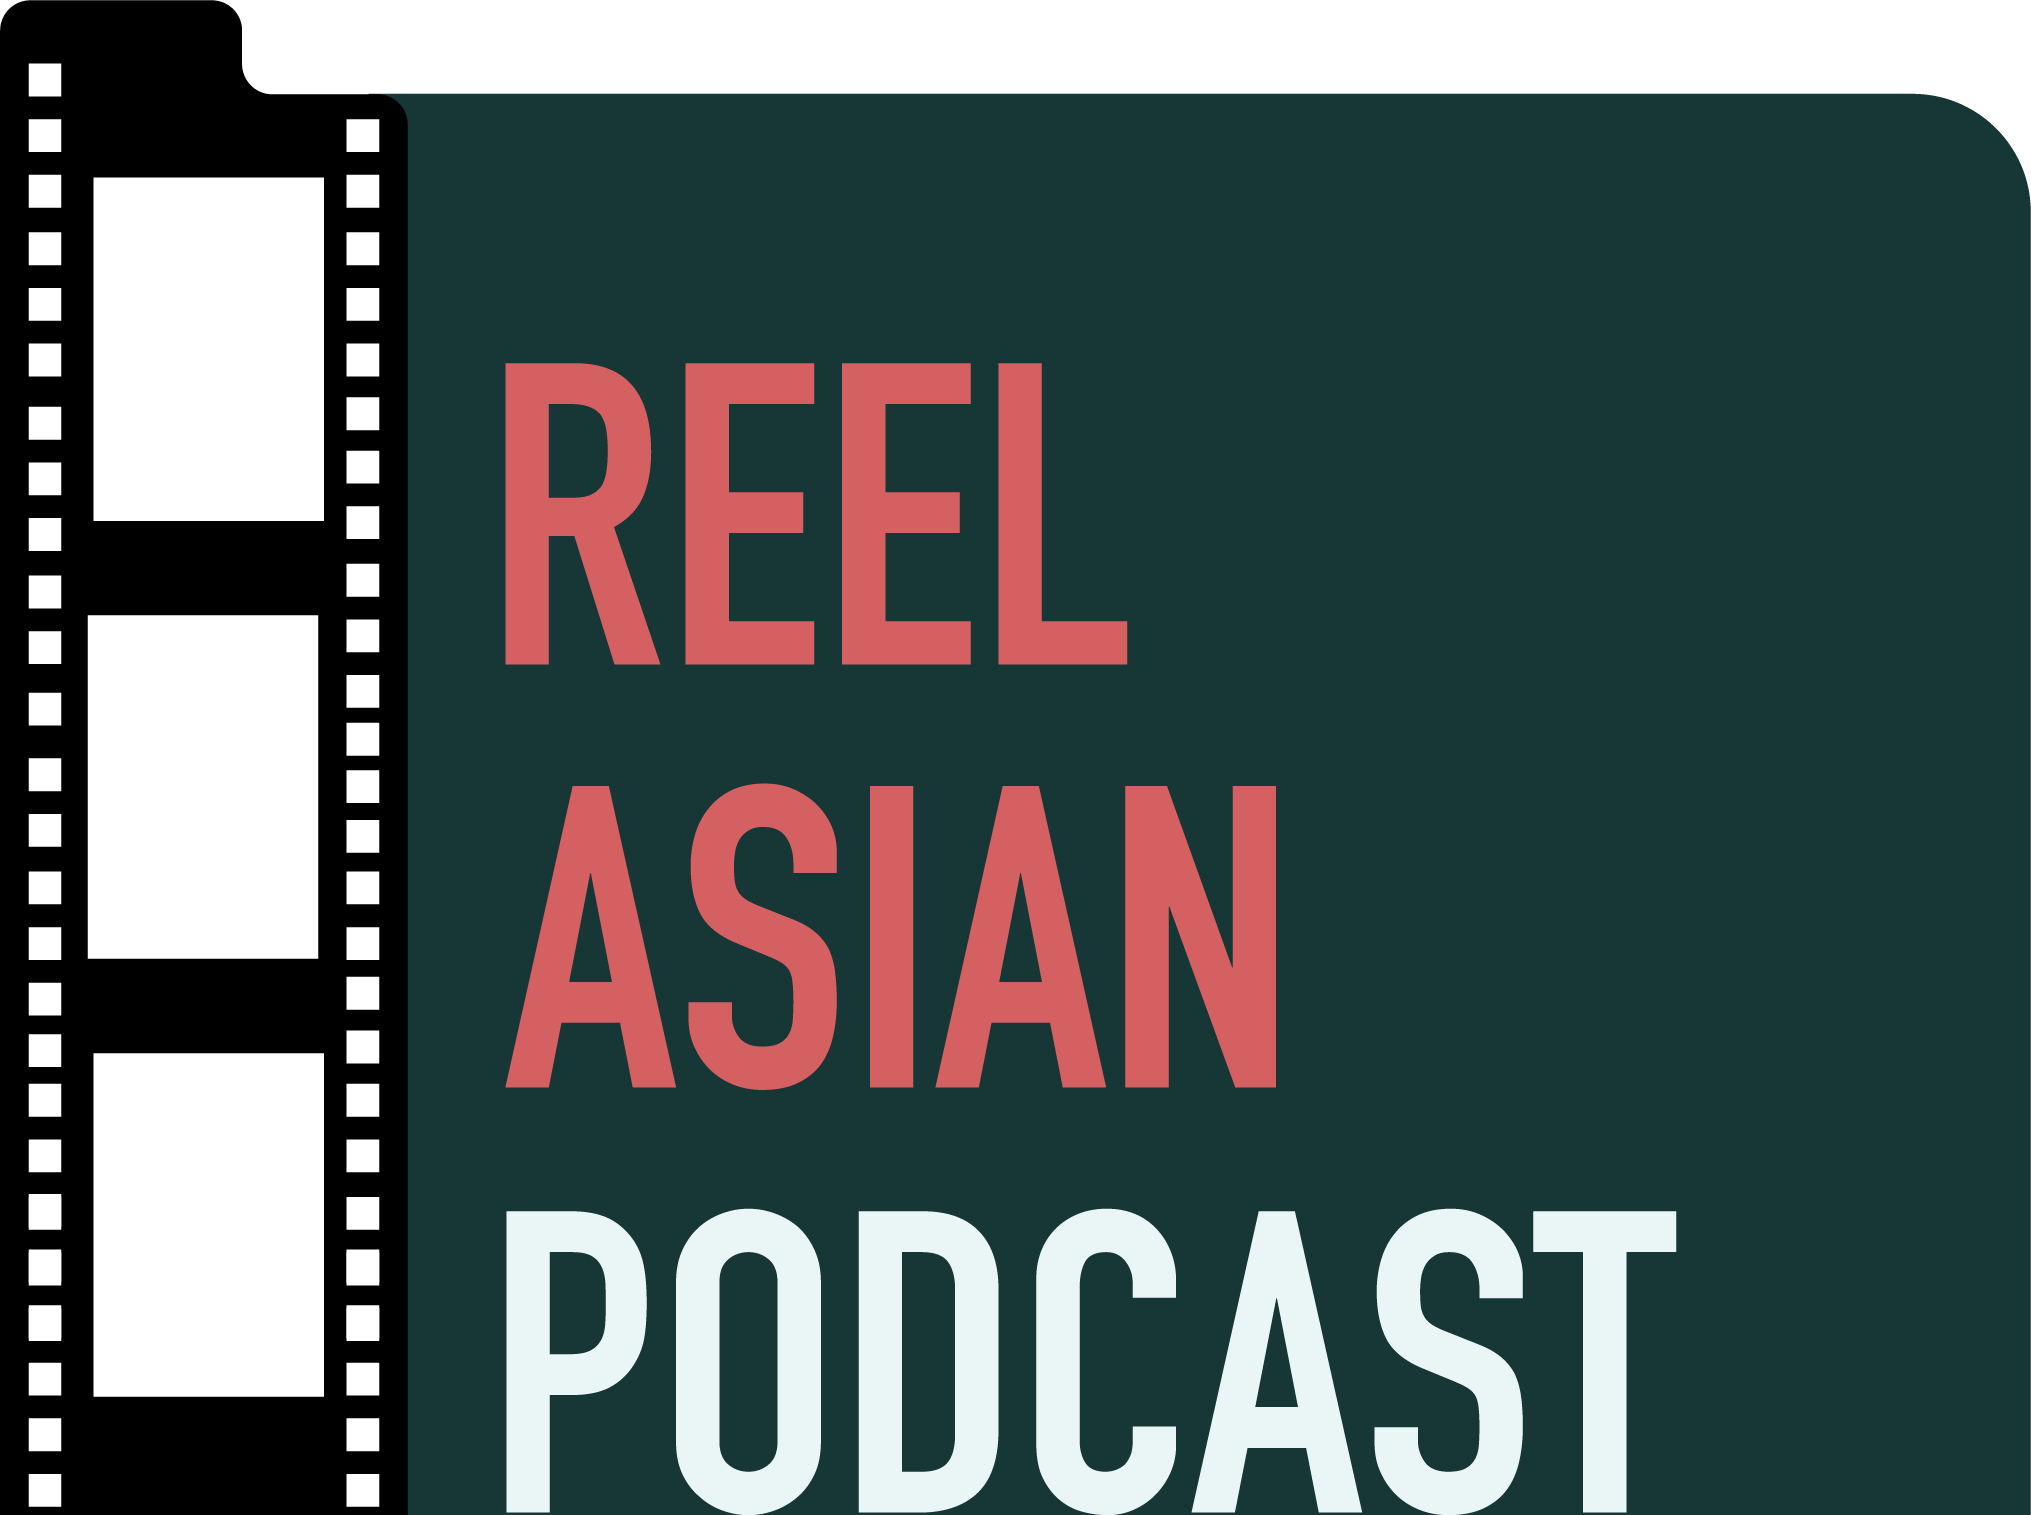 REEL ASIAN PODCAST